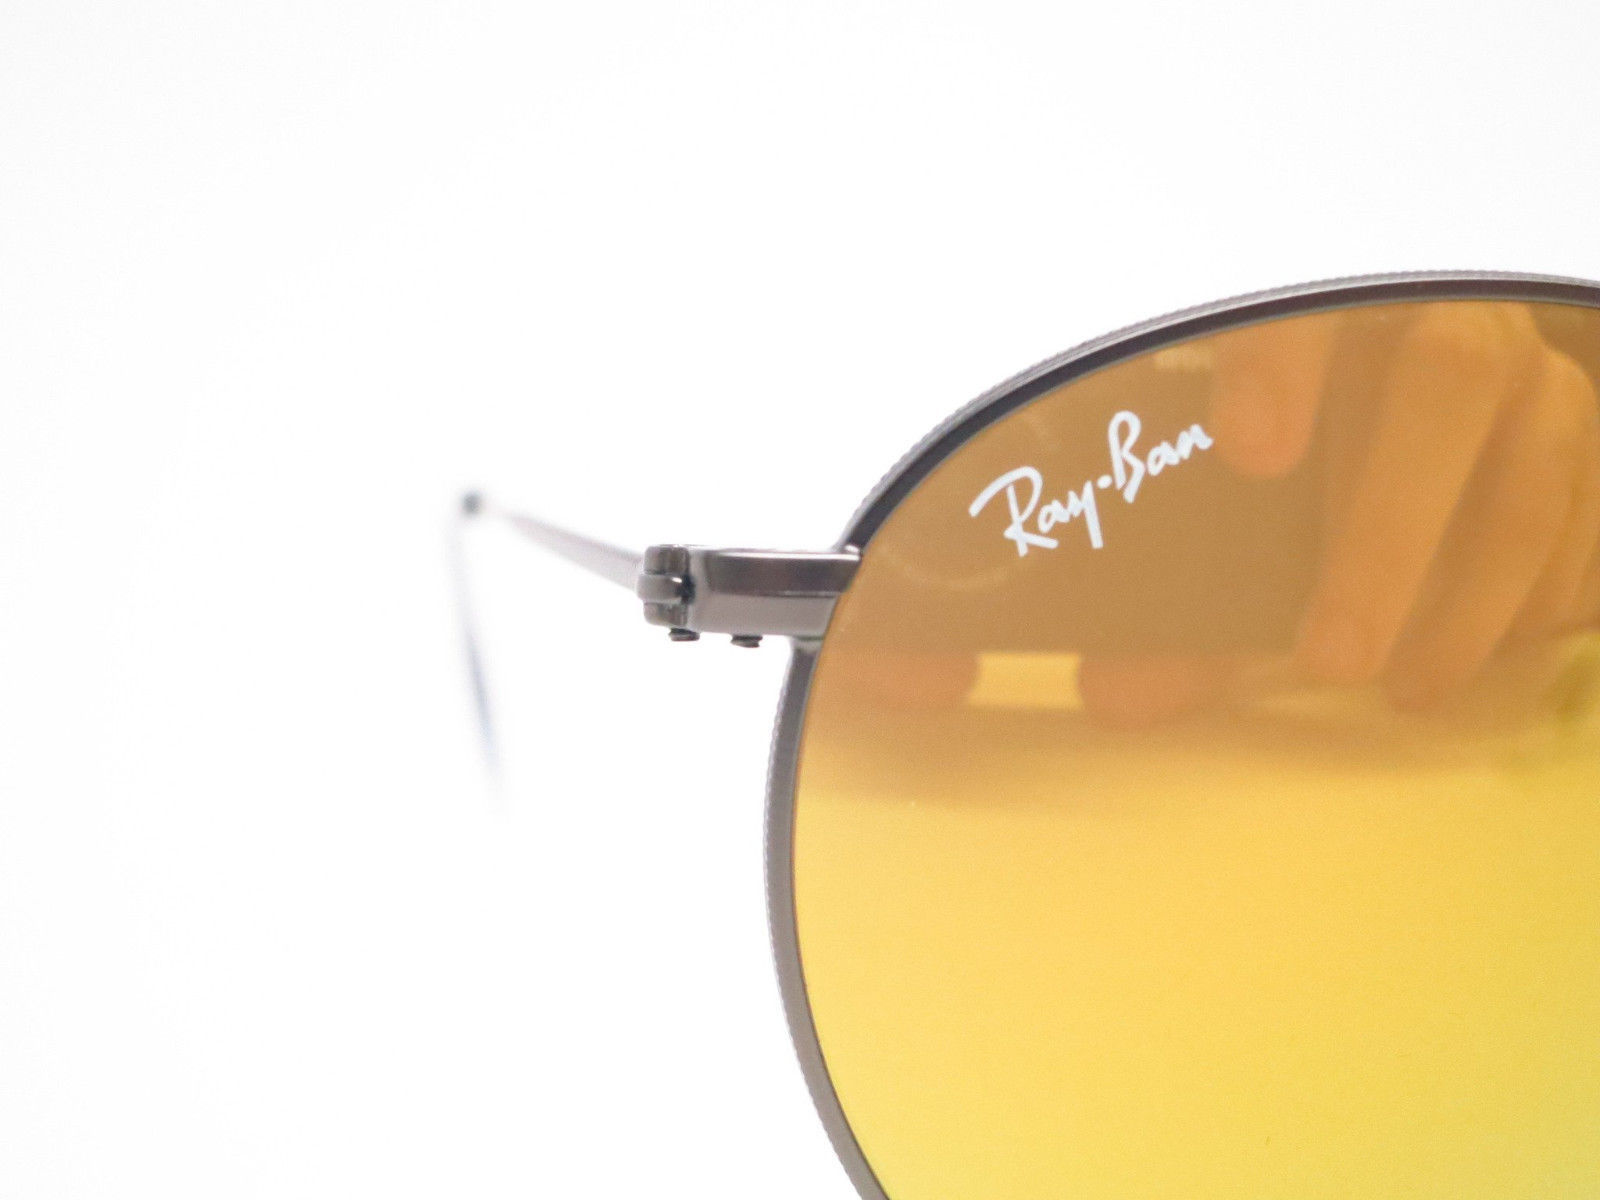 eea899a172 New Ray Ban Round Metal Rb 3447 029 93 Matte and similar items